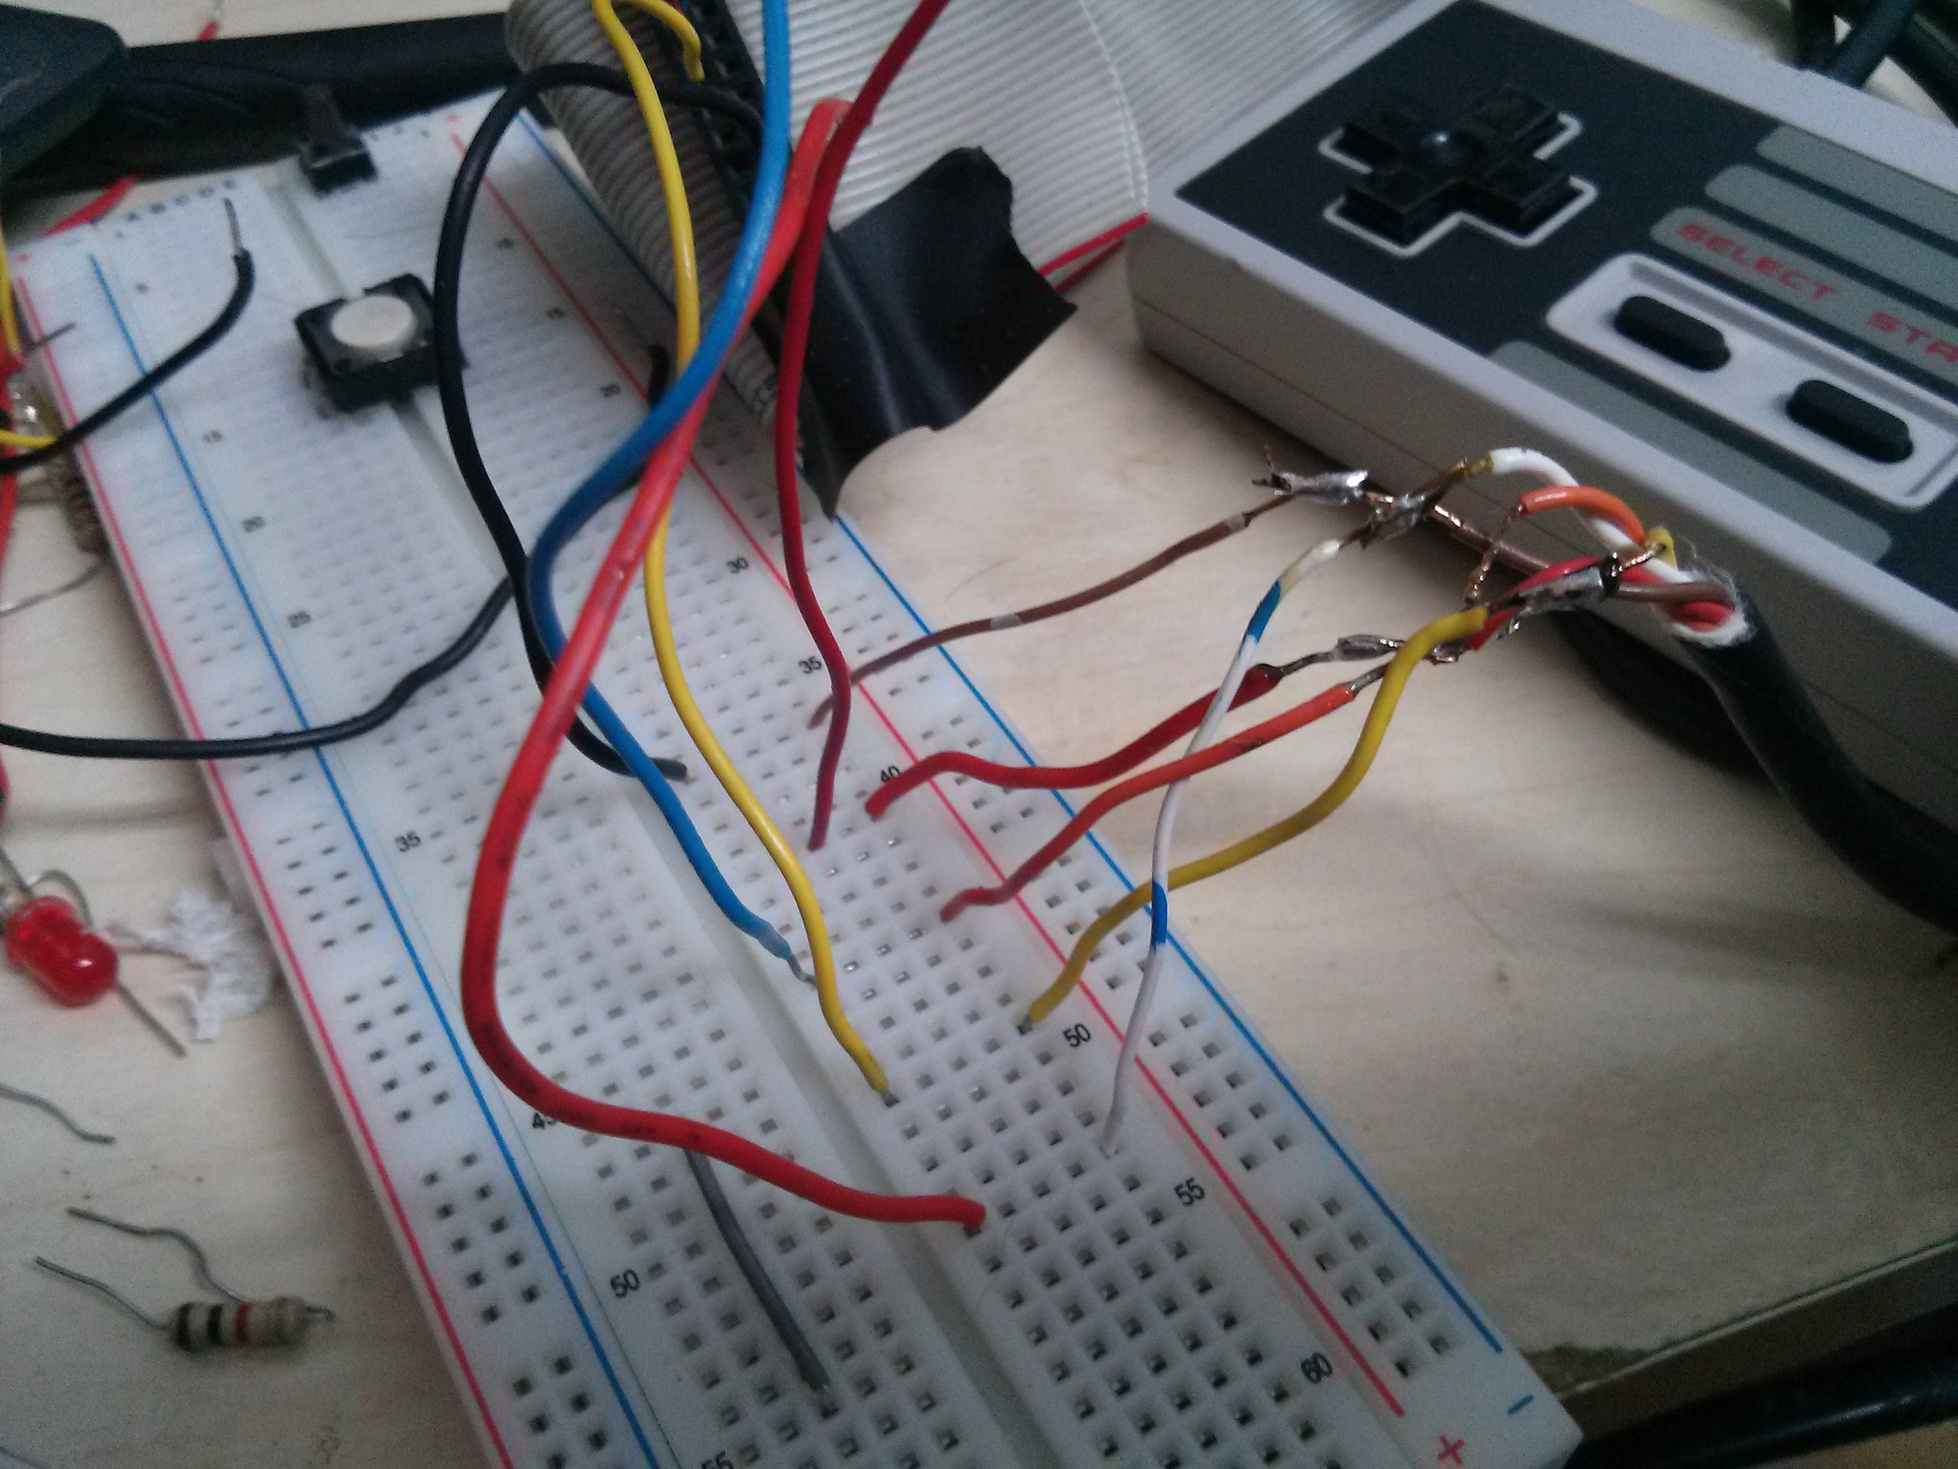 Nes Eastons Stuff Breadboard Wiring Diagram I Spliced The Wires On Controller Thanks To This And Used A Connect Appropriate Ground 5v Data Latch